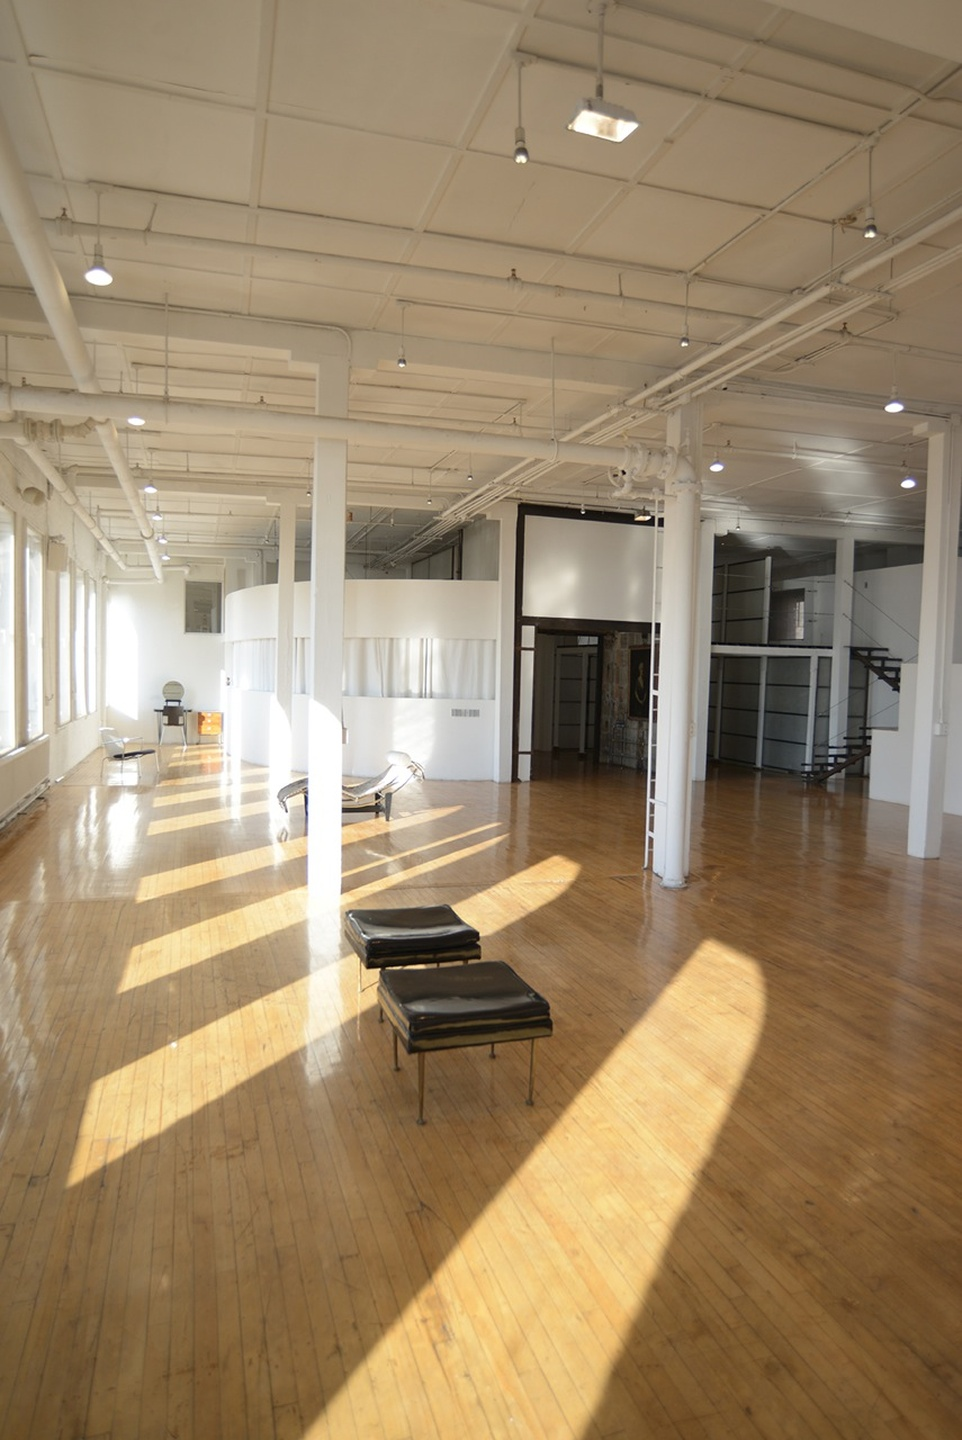 NYC corporate event venues Galerie d'art Michelson Studio image 1